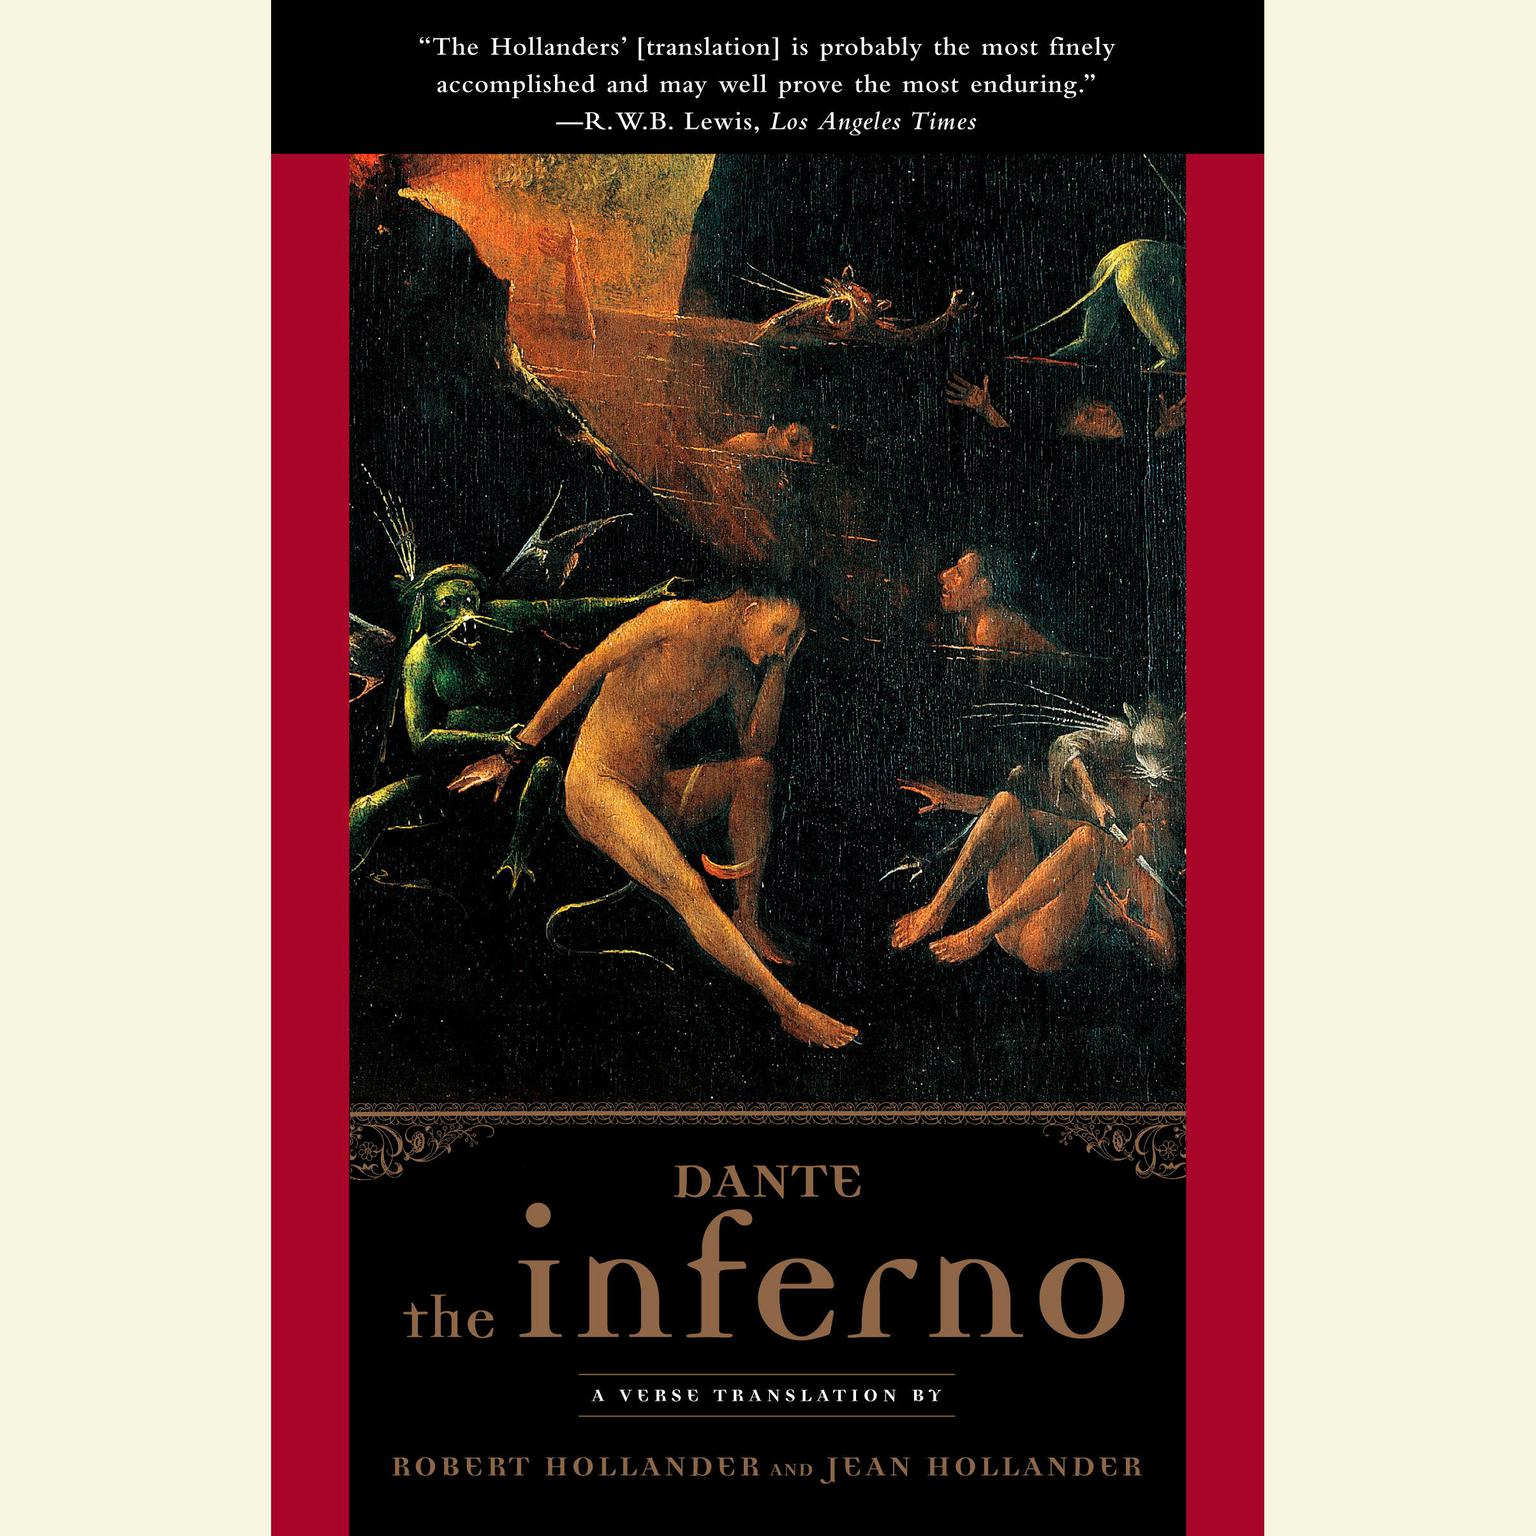 an analysis of the elevated literary style in dante alighieris book inferno Dante alighieris the divine comedy purgatory dante alighieri\'s the divine comedy, purgatory dante\'s the divine comedy section of purgatory is a depiction of dante and his struggle to reach paradise.